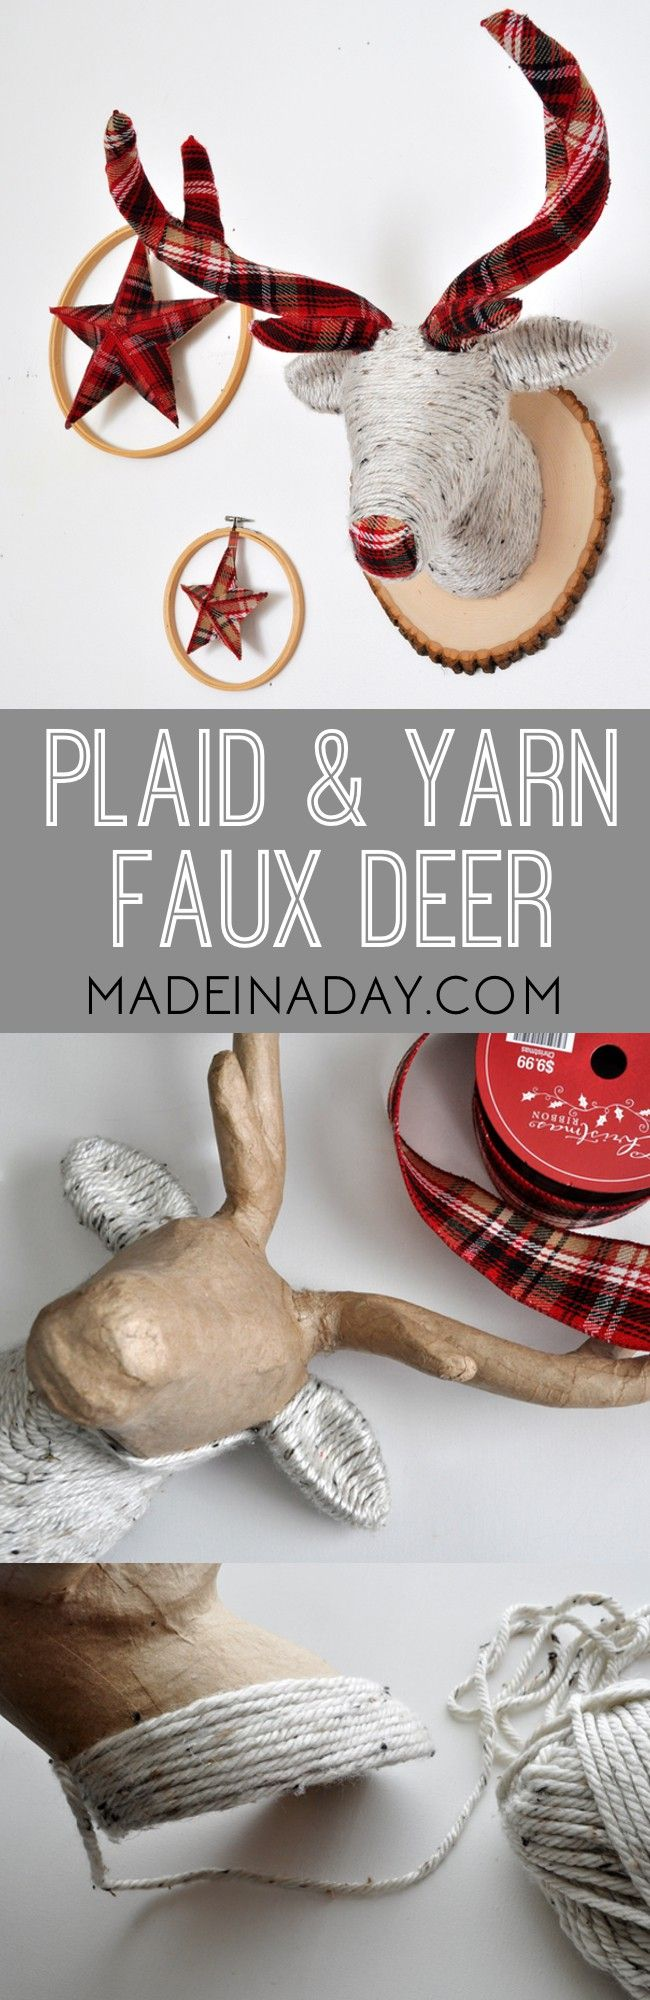 Plaid and Yarn Faux Deer Head, cover a deer head with yarn and plaid ribbon, then mount it on a wood slice for cute holiday decor, stag head via @madeinaday